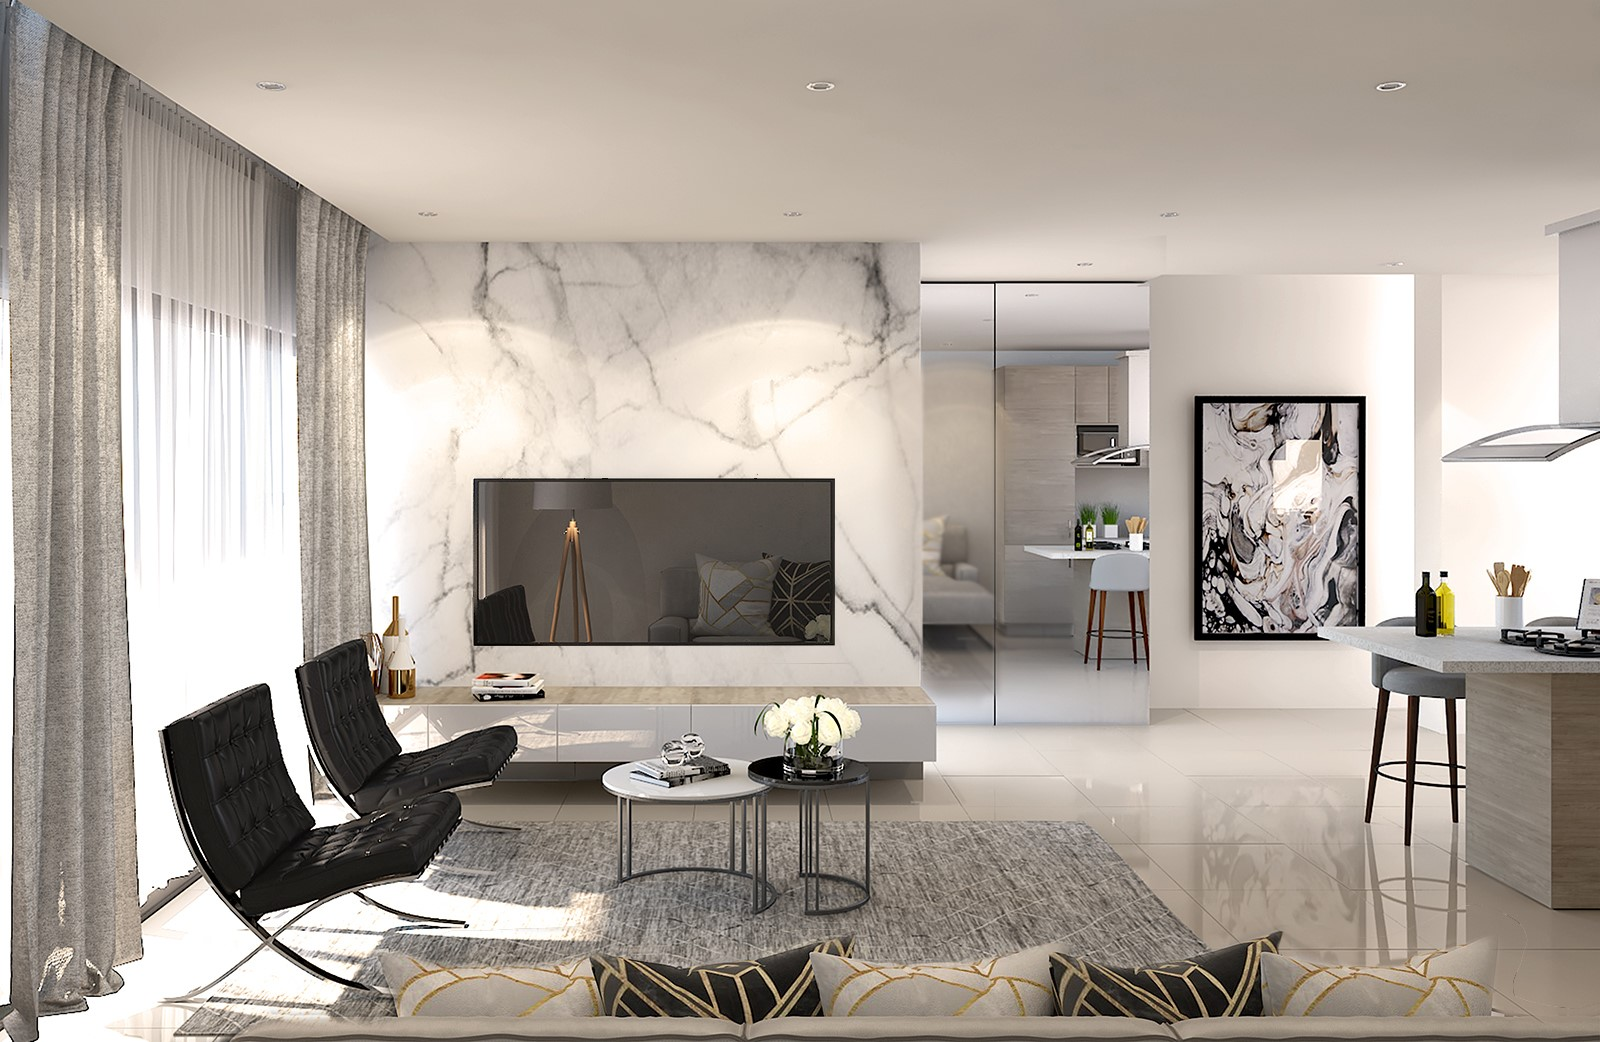 The Lombardy offers modern apartment living